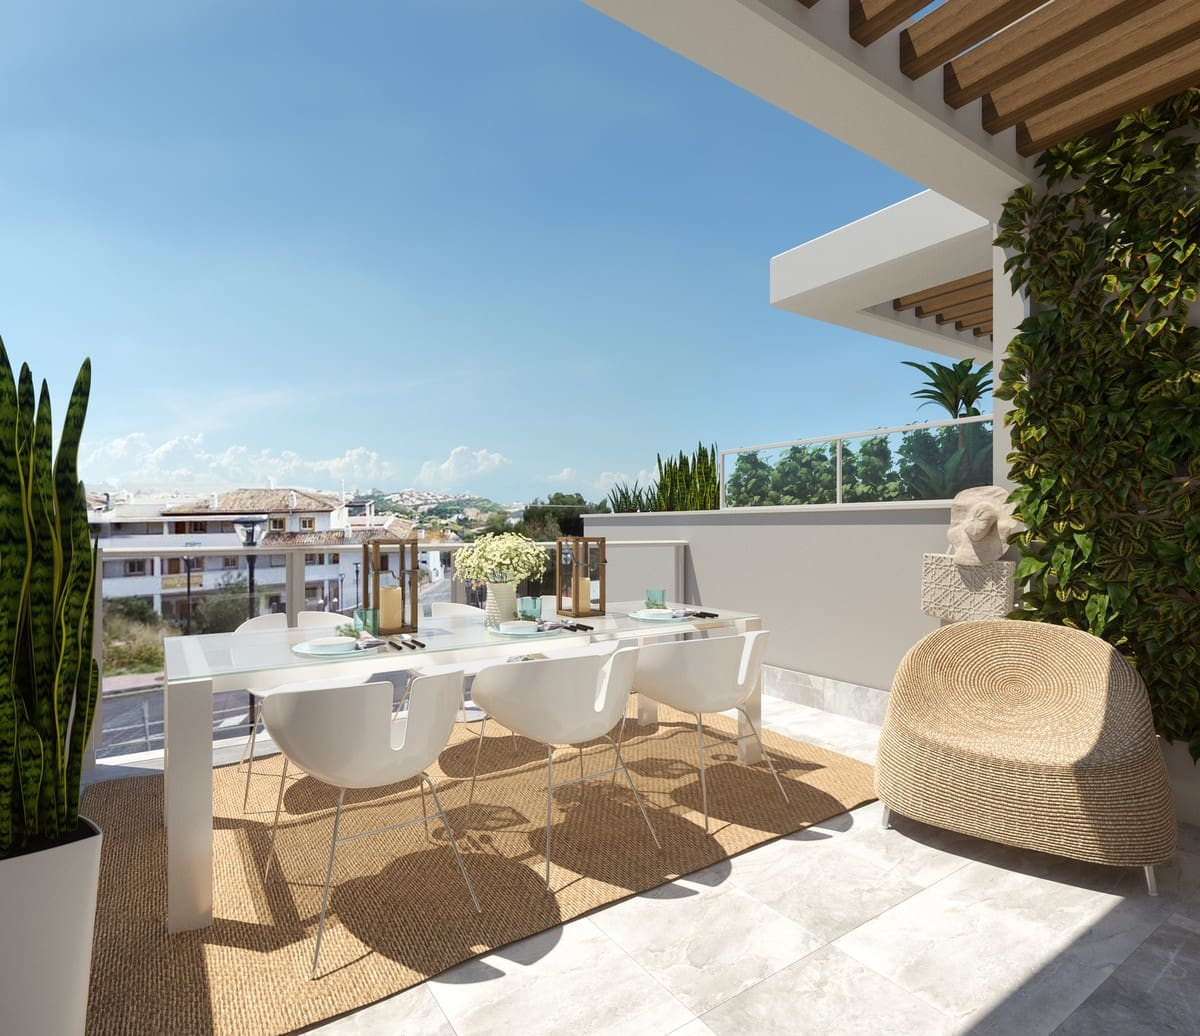 3 bedroom Apartment for sale in Benalmadena with pool garage - € 244,000 (Ref: 4525825)